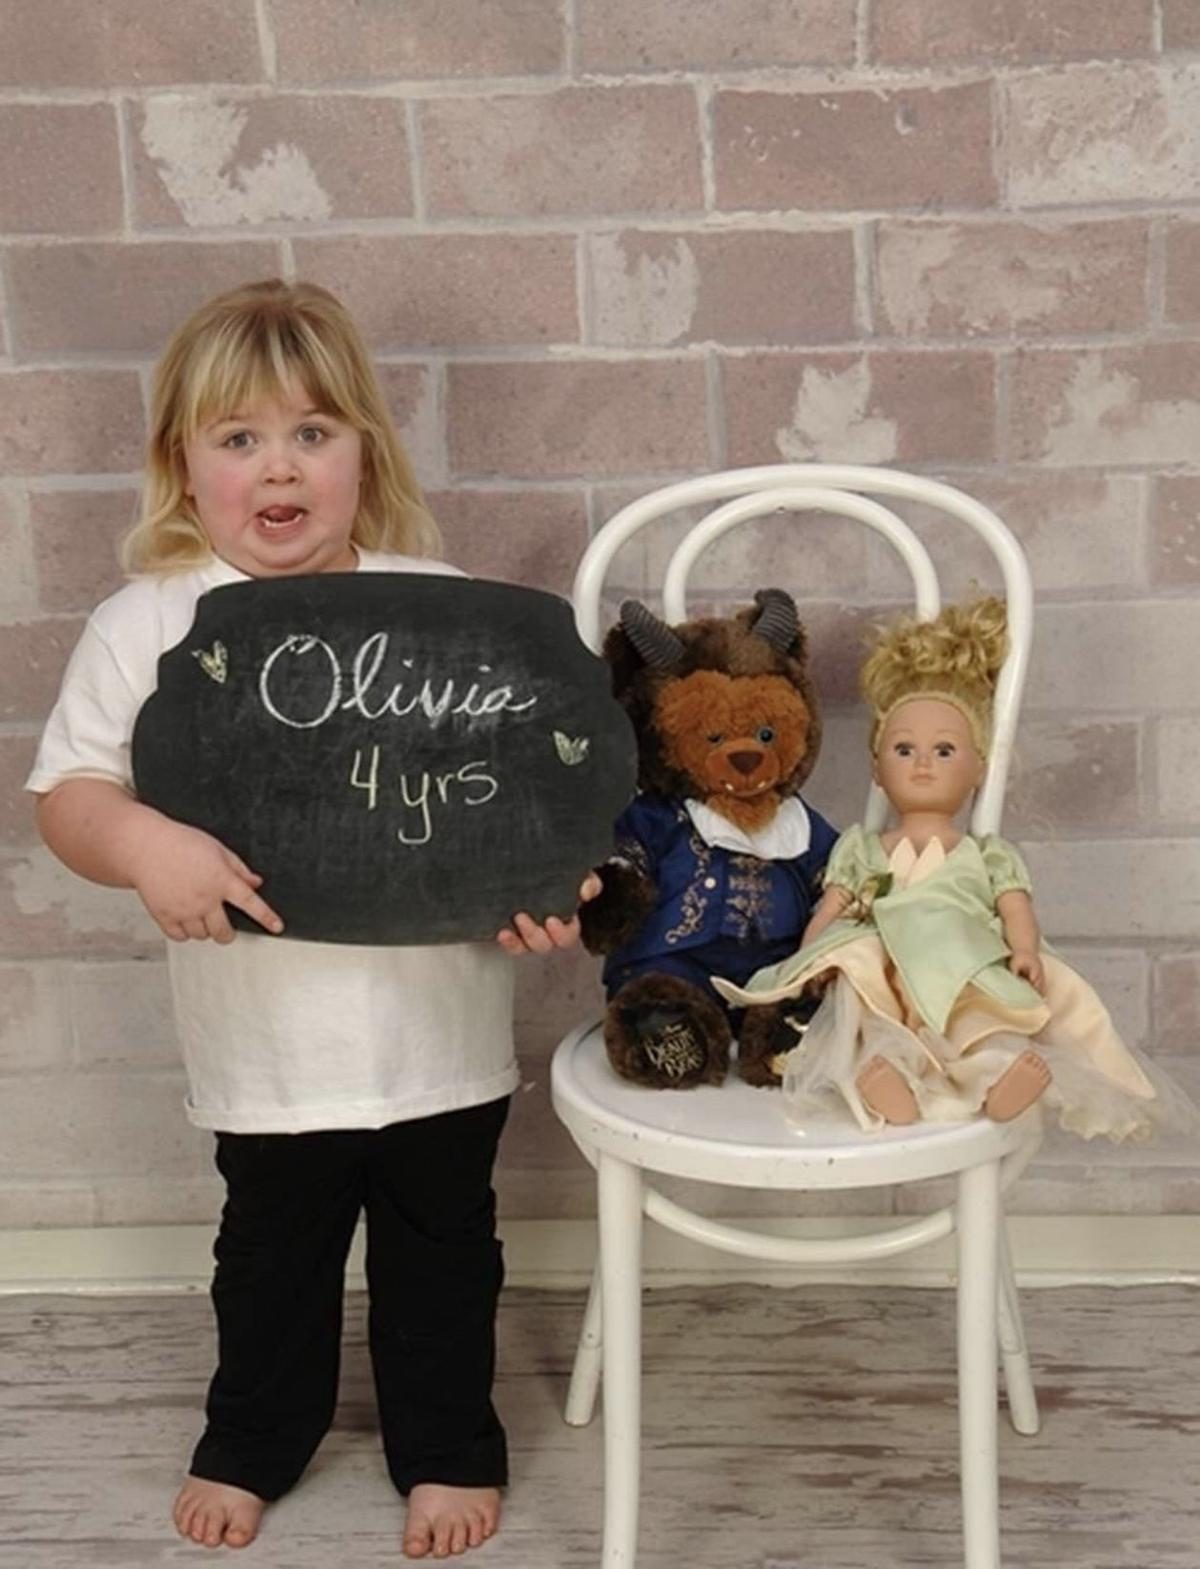 Livy and sign